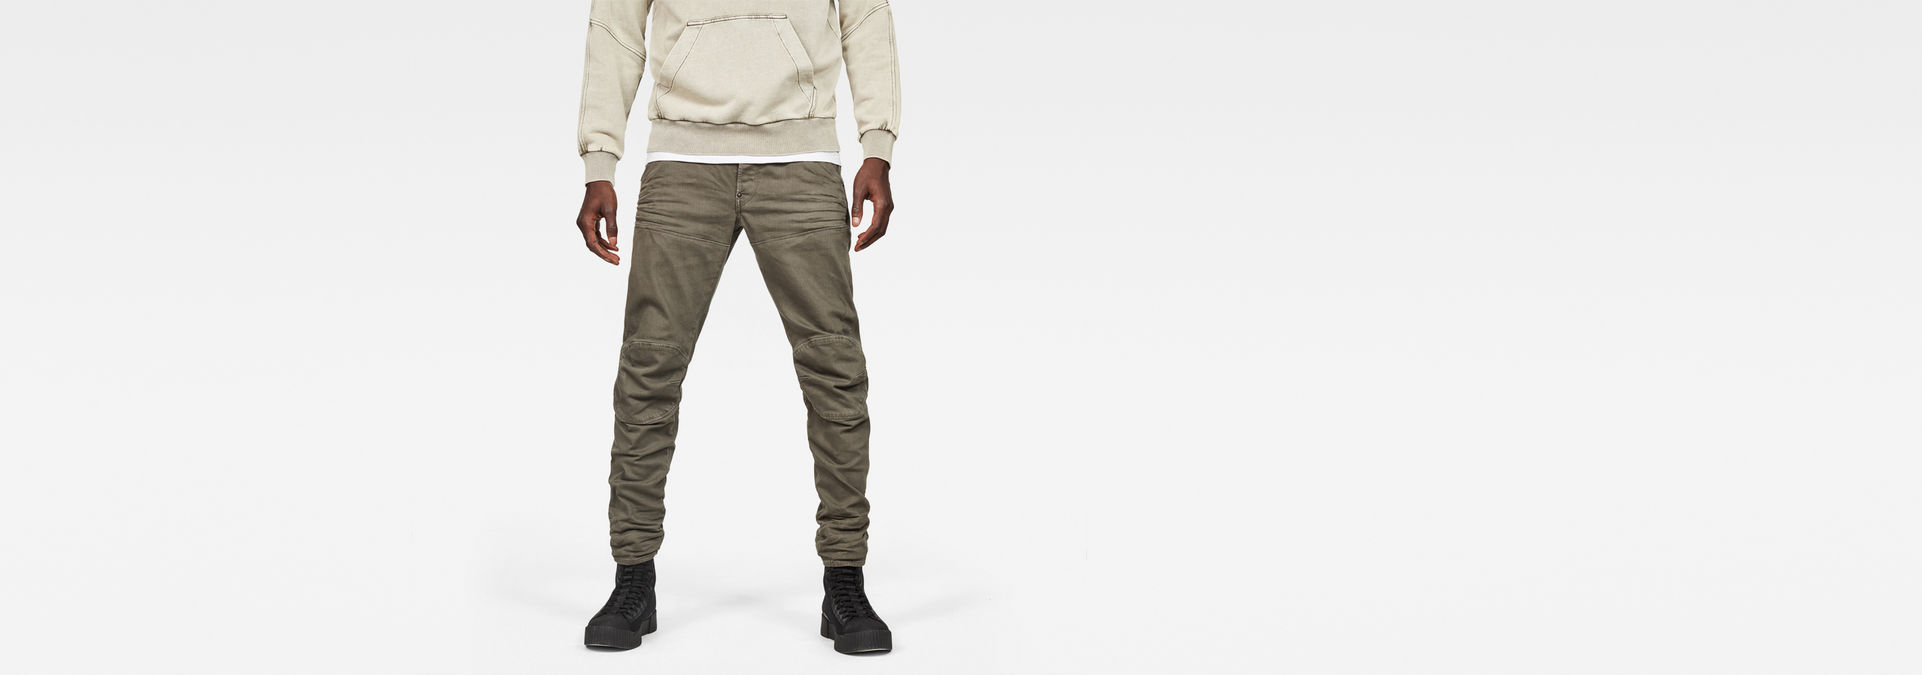 5620 G Star Elwood 3D Slim Color Jeans | G Star RAW®